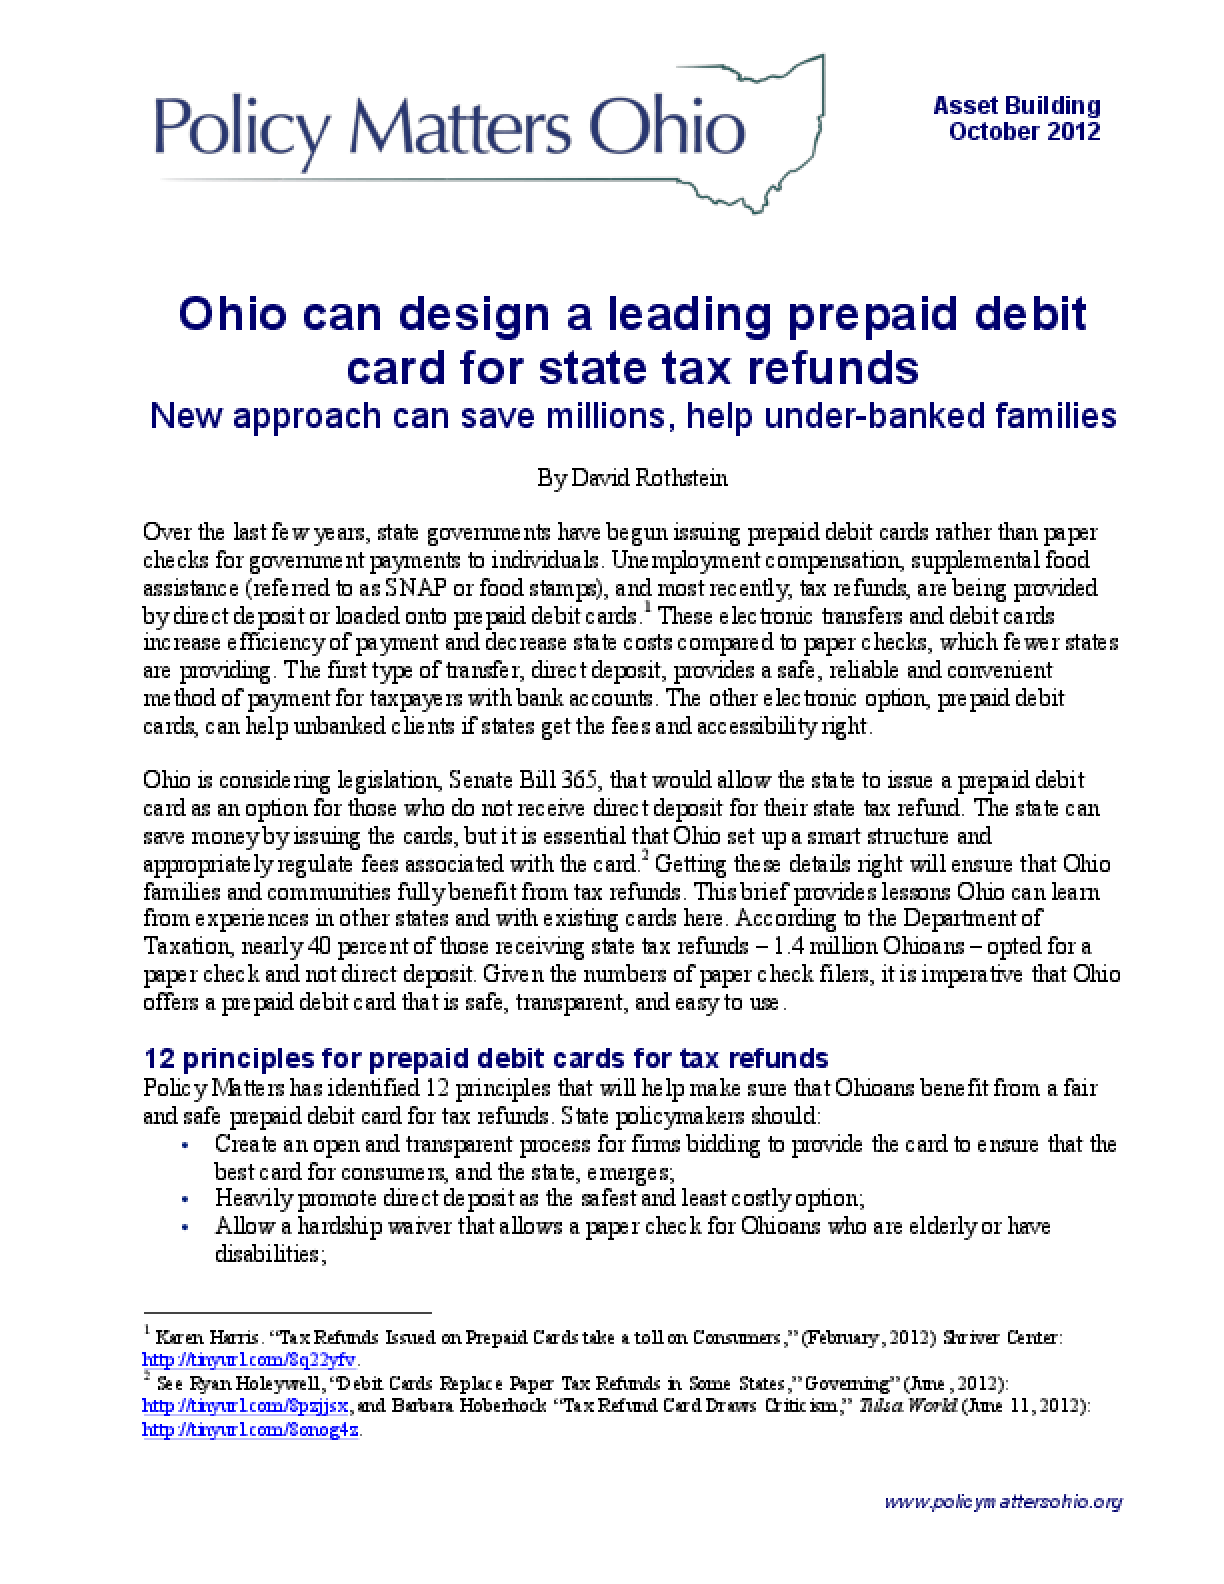 Ohio Can Design a Leading Prepaid Debit Card for State Tax Refunds: New Approach Can Save Millions, Help Under-Banked Families